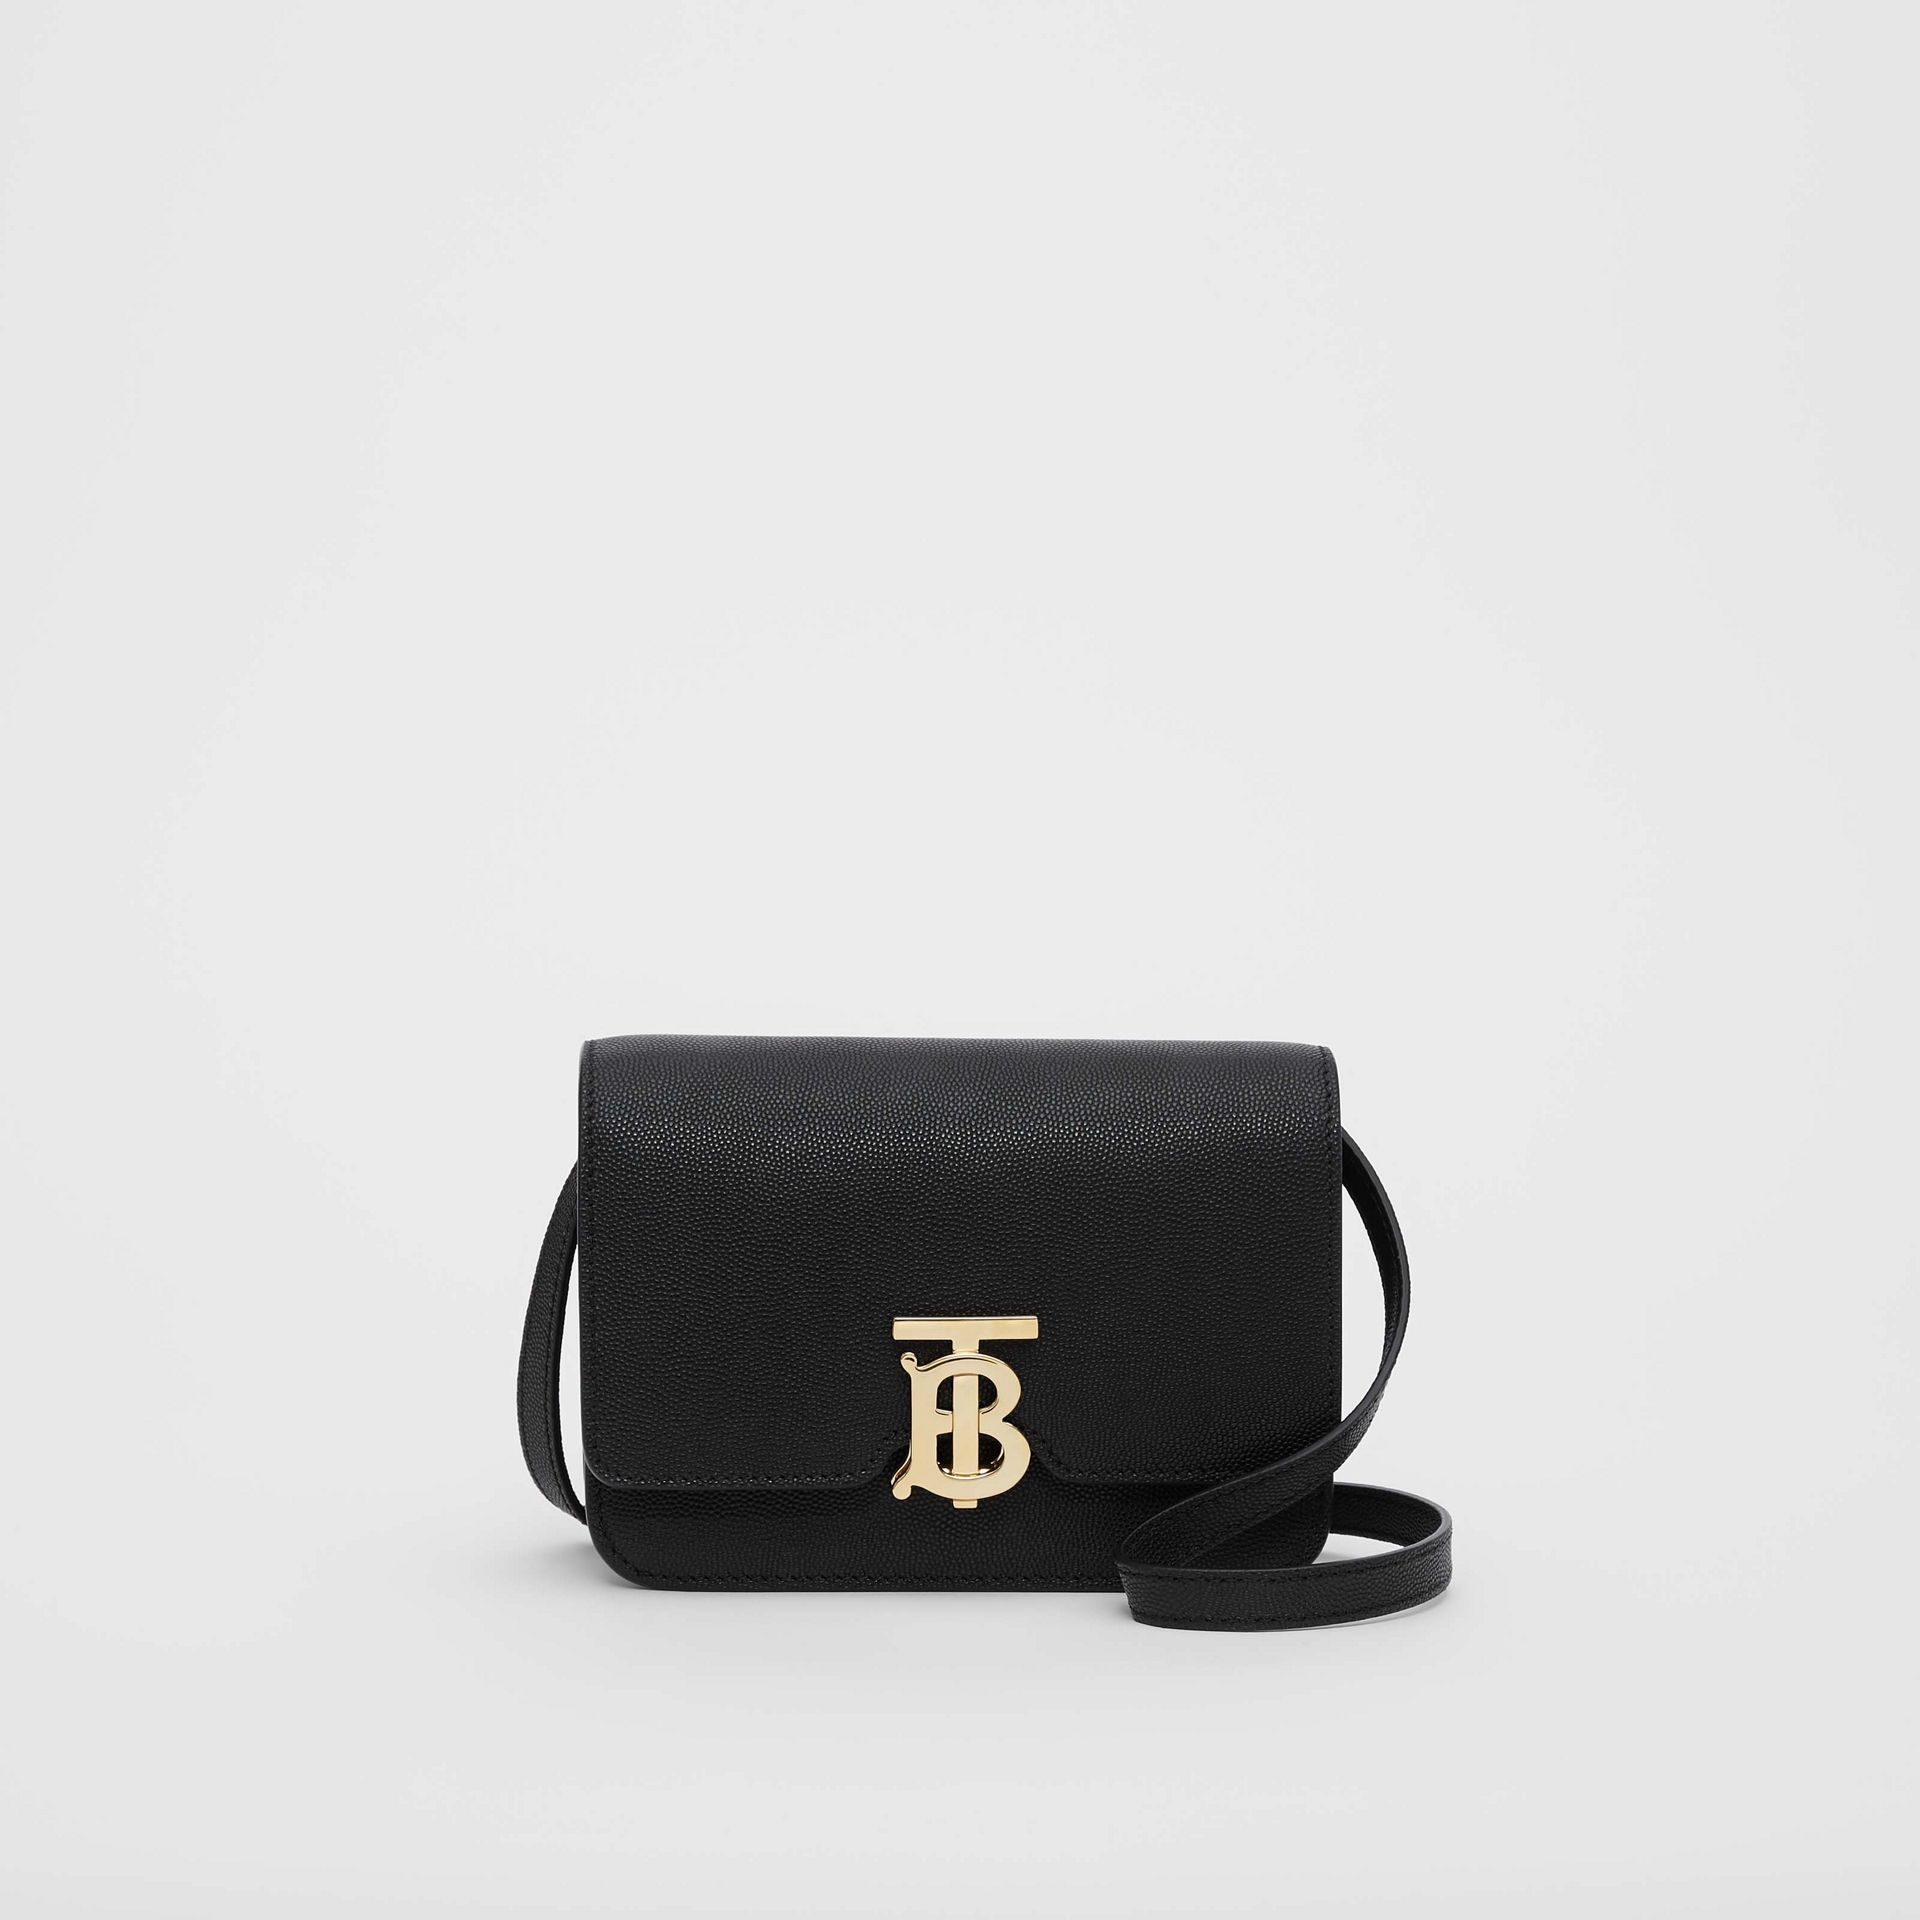 Mini Grainy Leather TB Bag in Black - Women | Burberry - gallery image 0